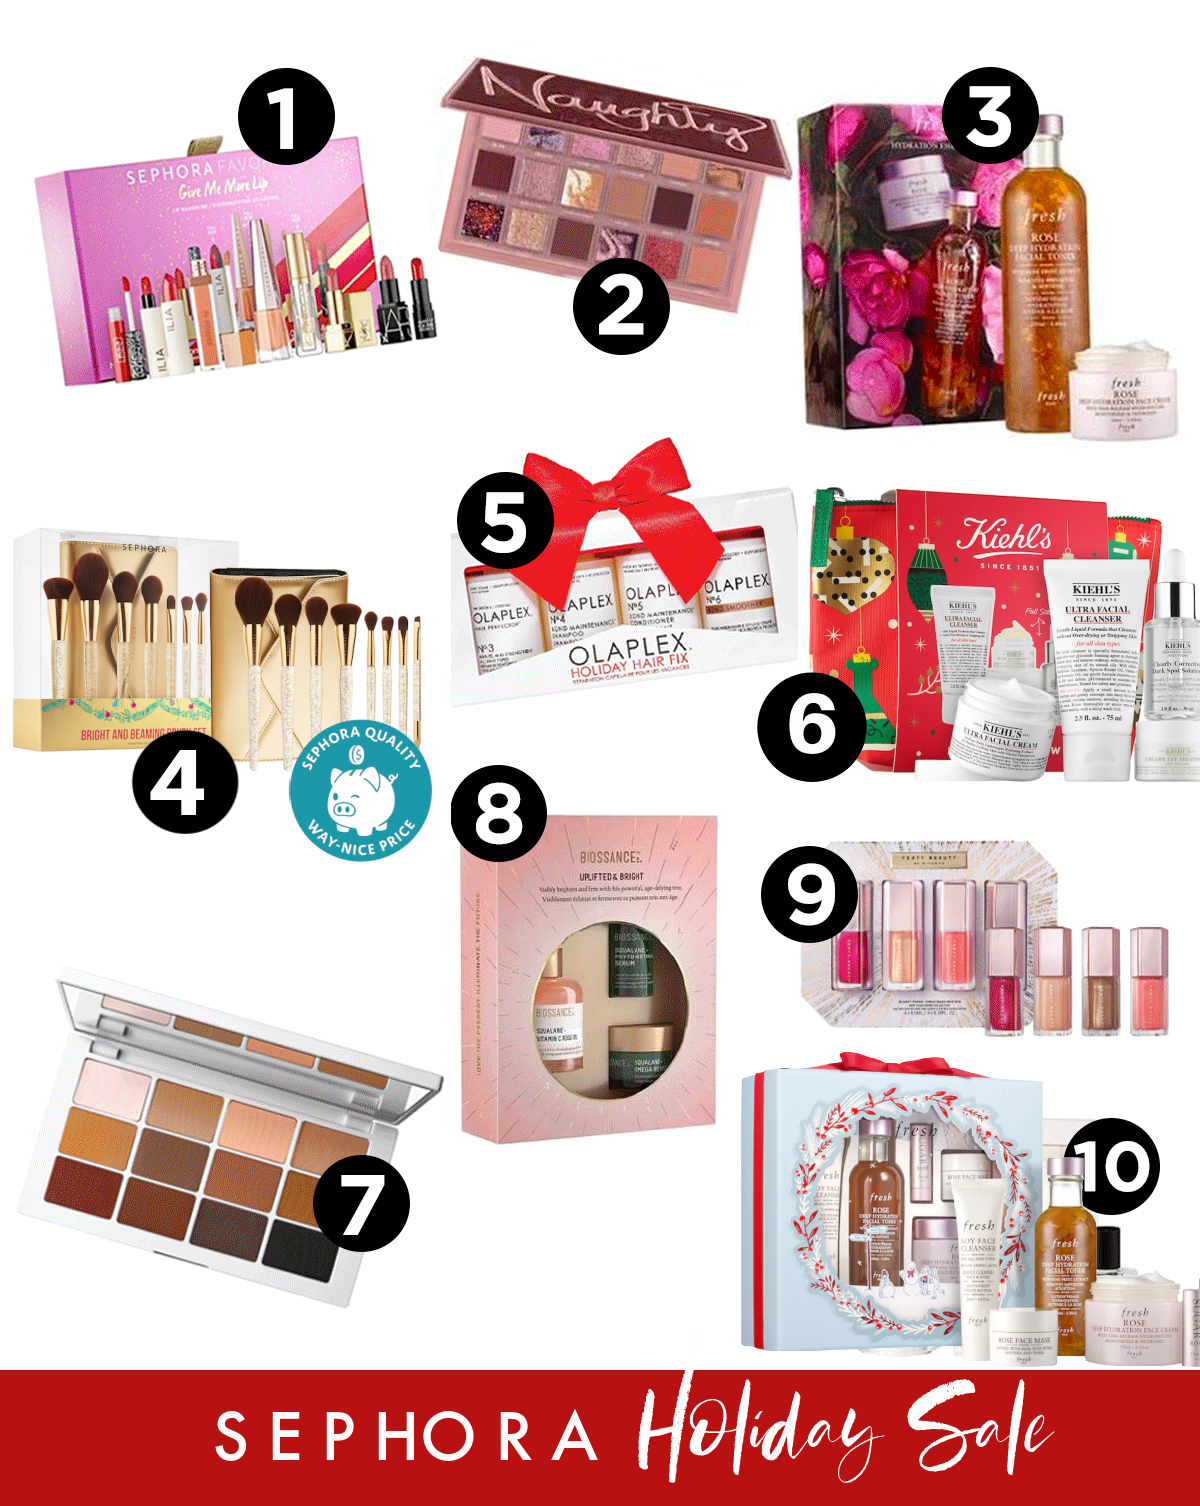 Sephora Mega Holiday Sale